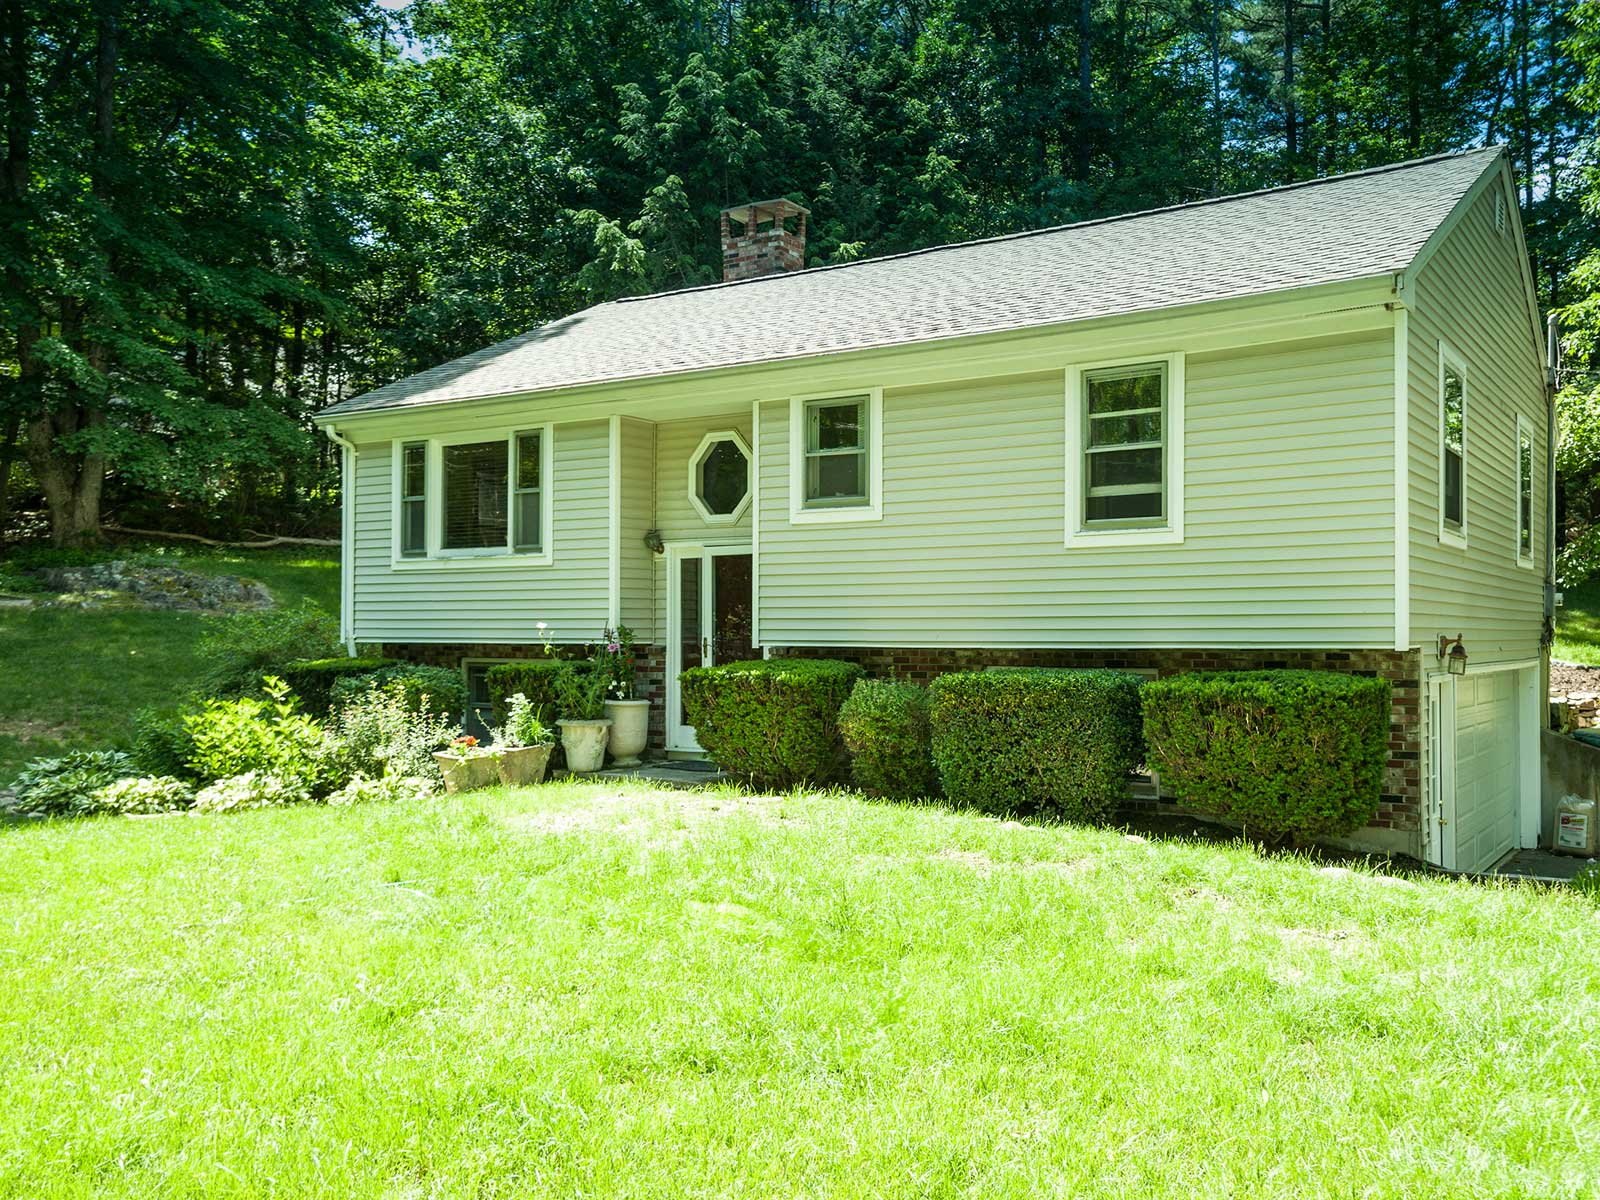 Single Family Home for Sale at York Raised Ranch 2 Ledgewood Drive York, Maine 03909 United States